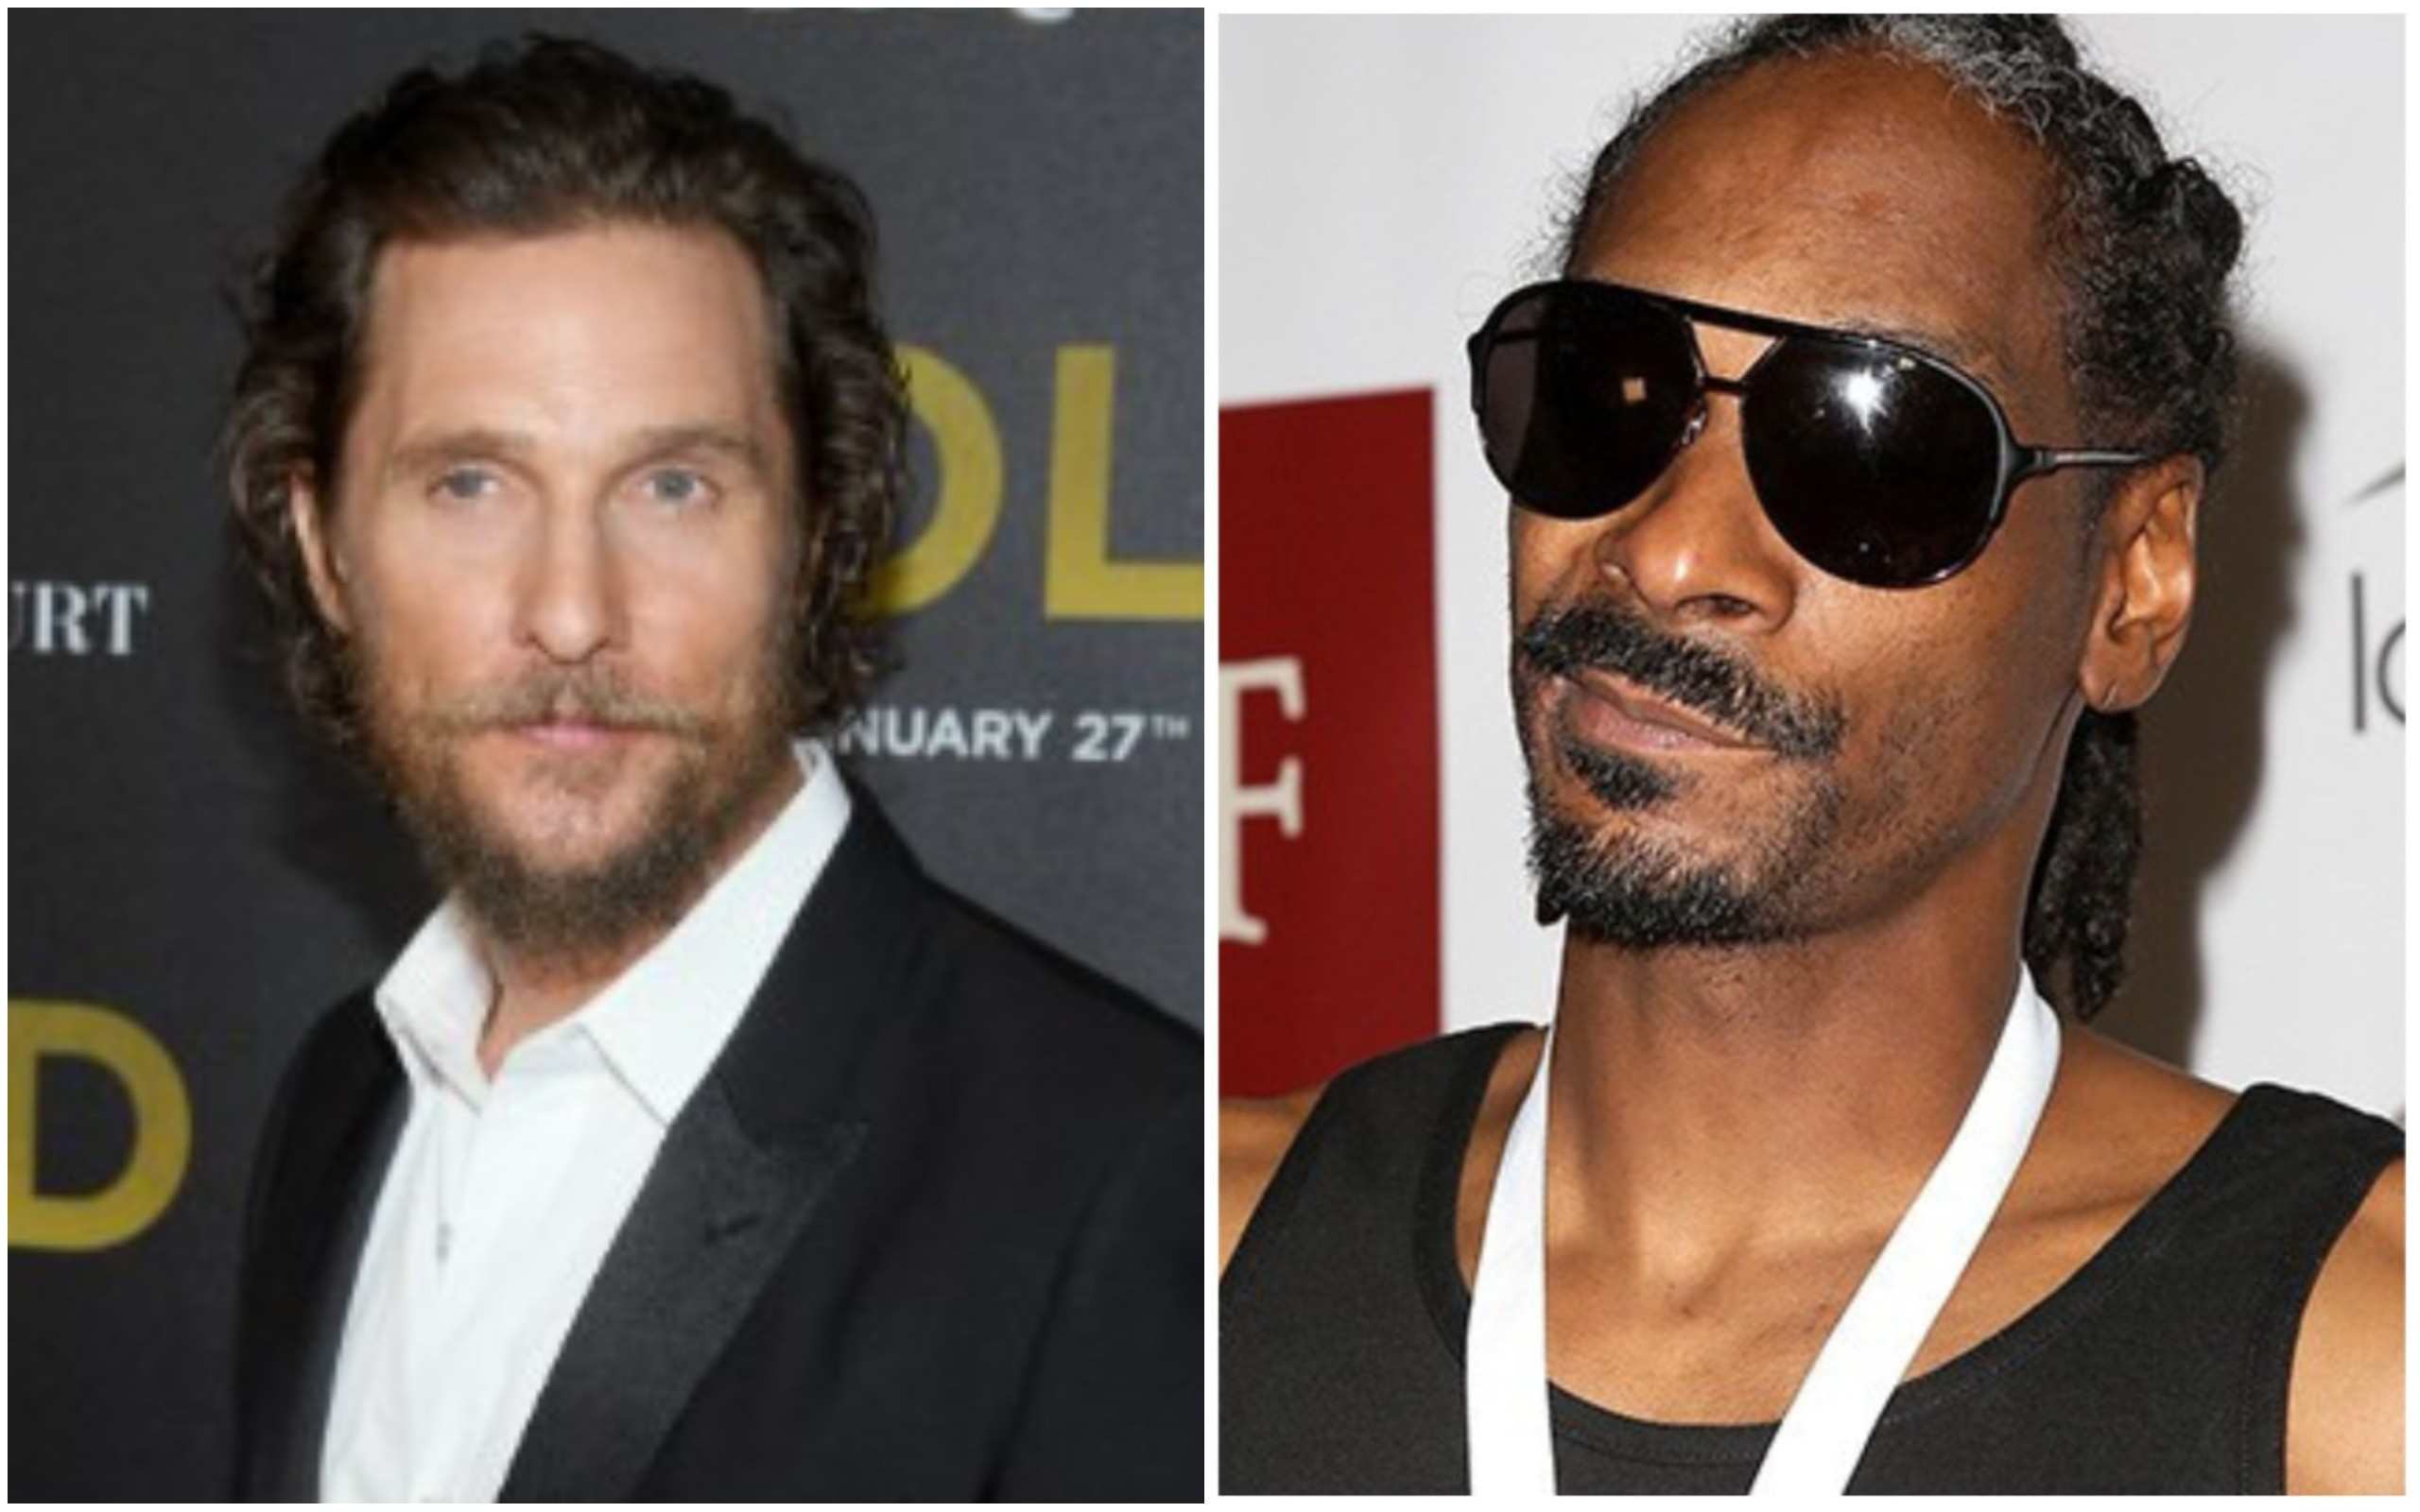 Matthew McConaughey e Snoop Dogg (Foto: Getty Images)